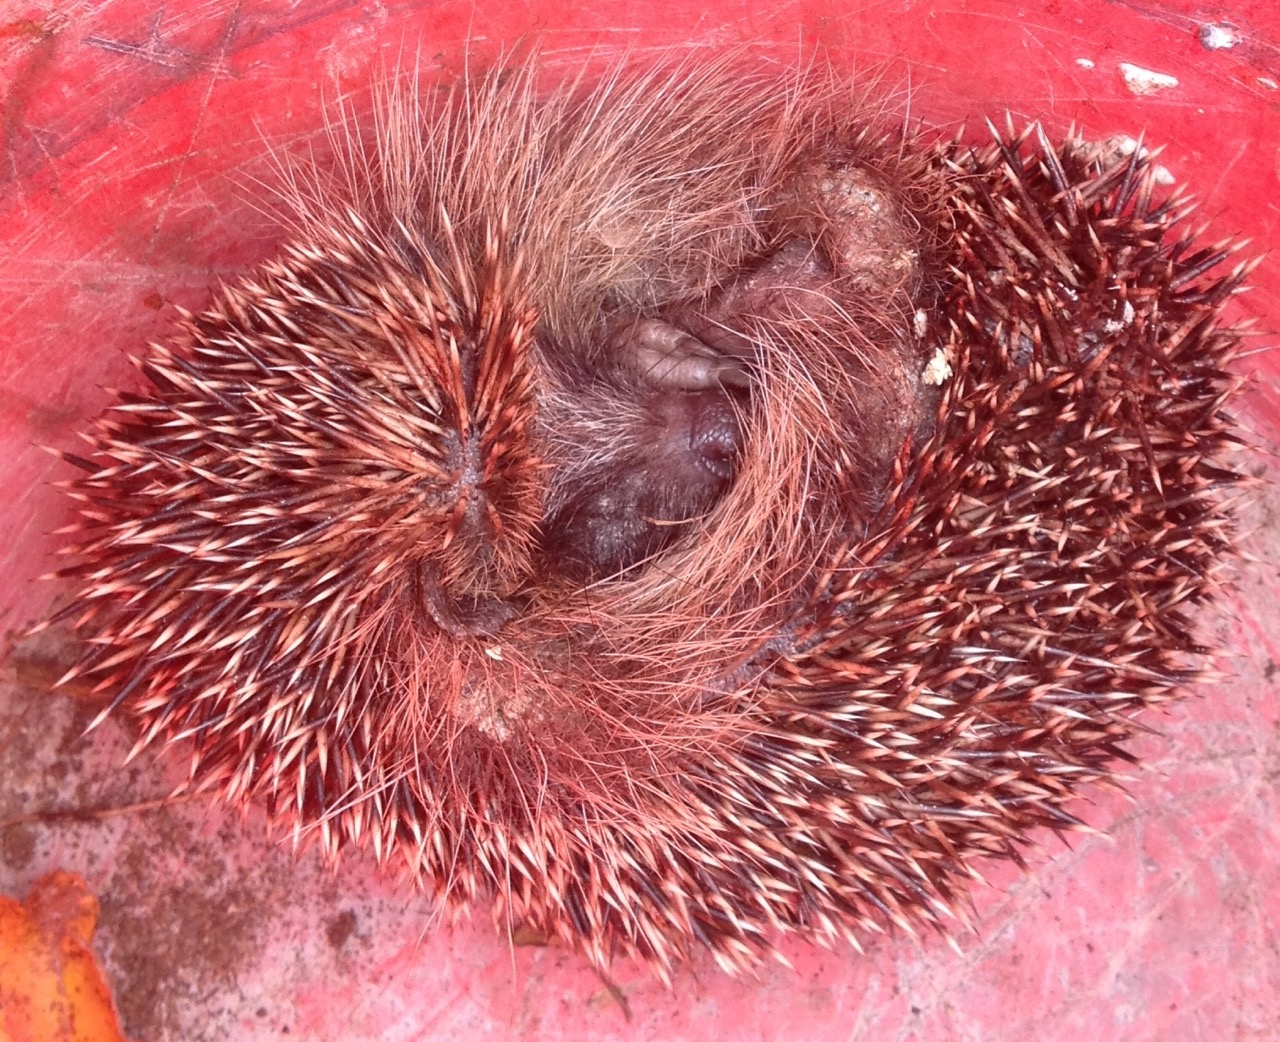 We carefully moved the hedgehog into a bucket and later gave it some water and hedgehog food (see video below). The hog stayed curled up for quite some time - they have very big feet!